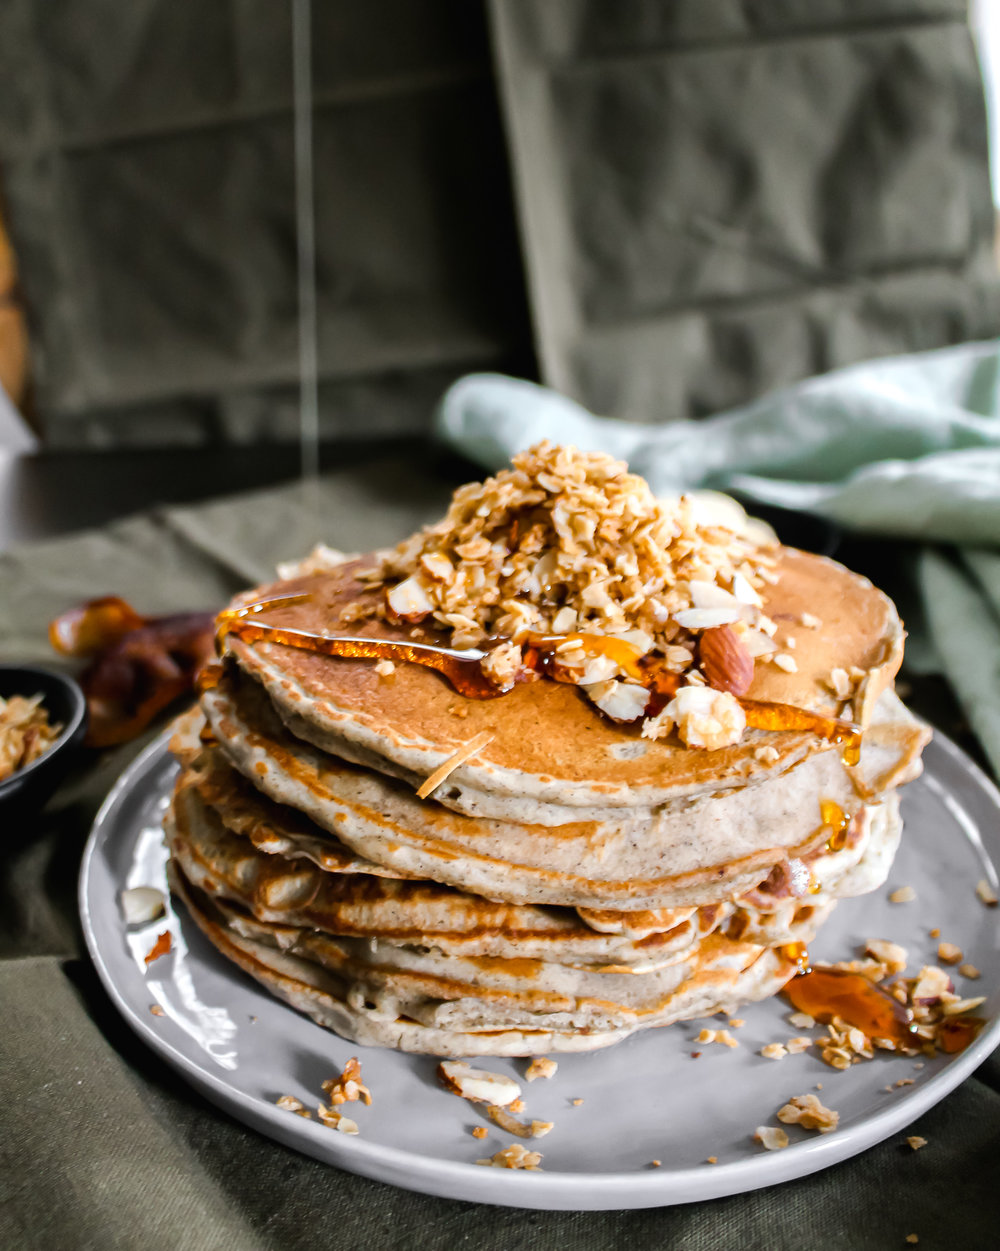 Buckwheat Pancakes - Don't let the buckwheat scare you. These are still crazy delish.